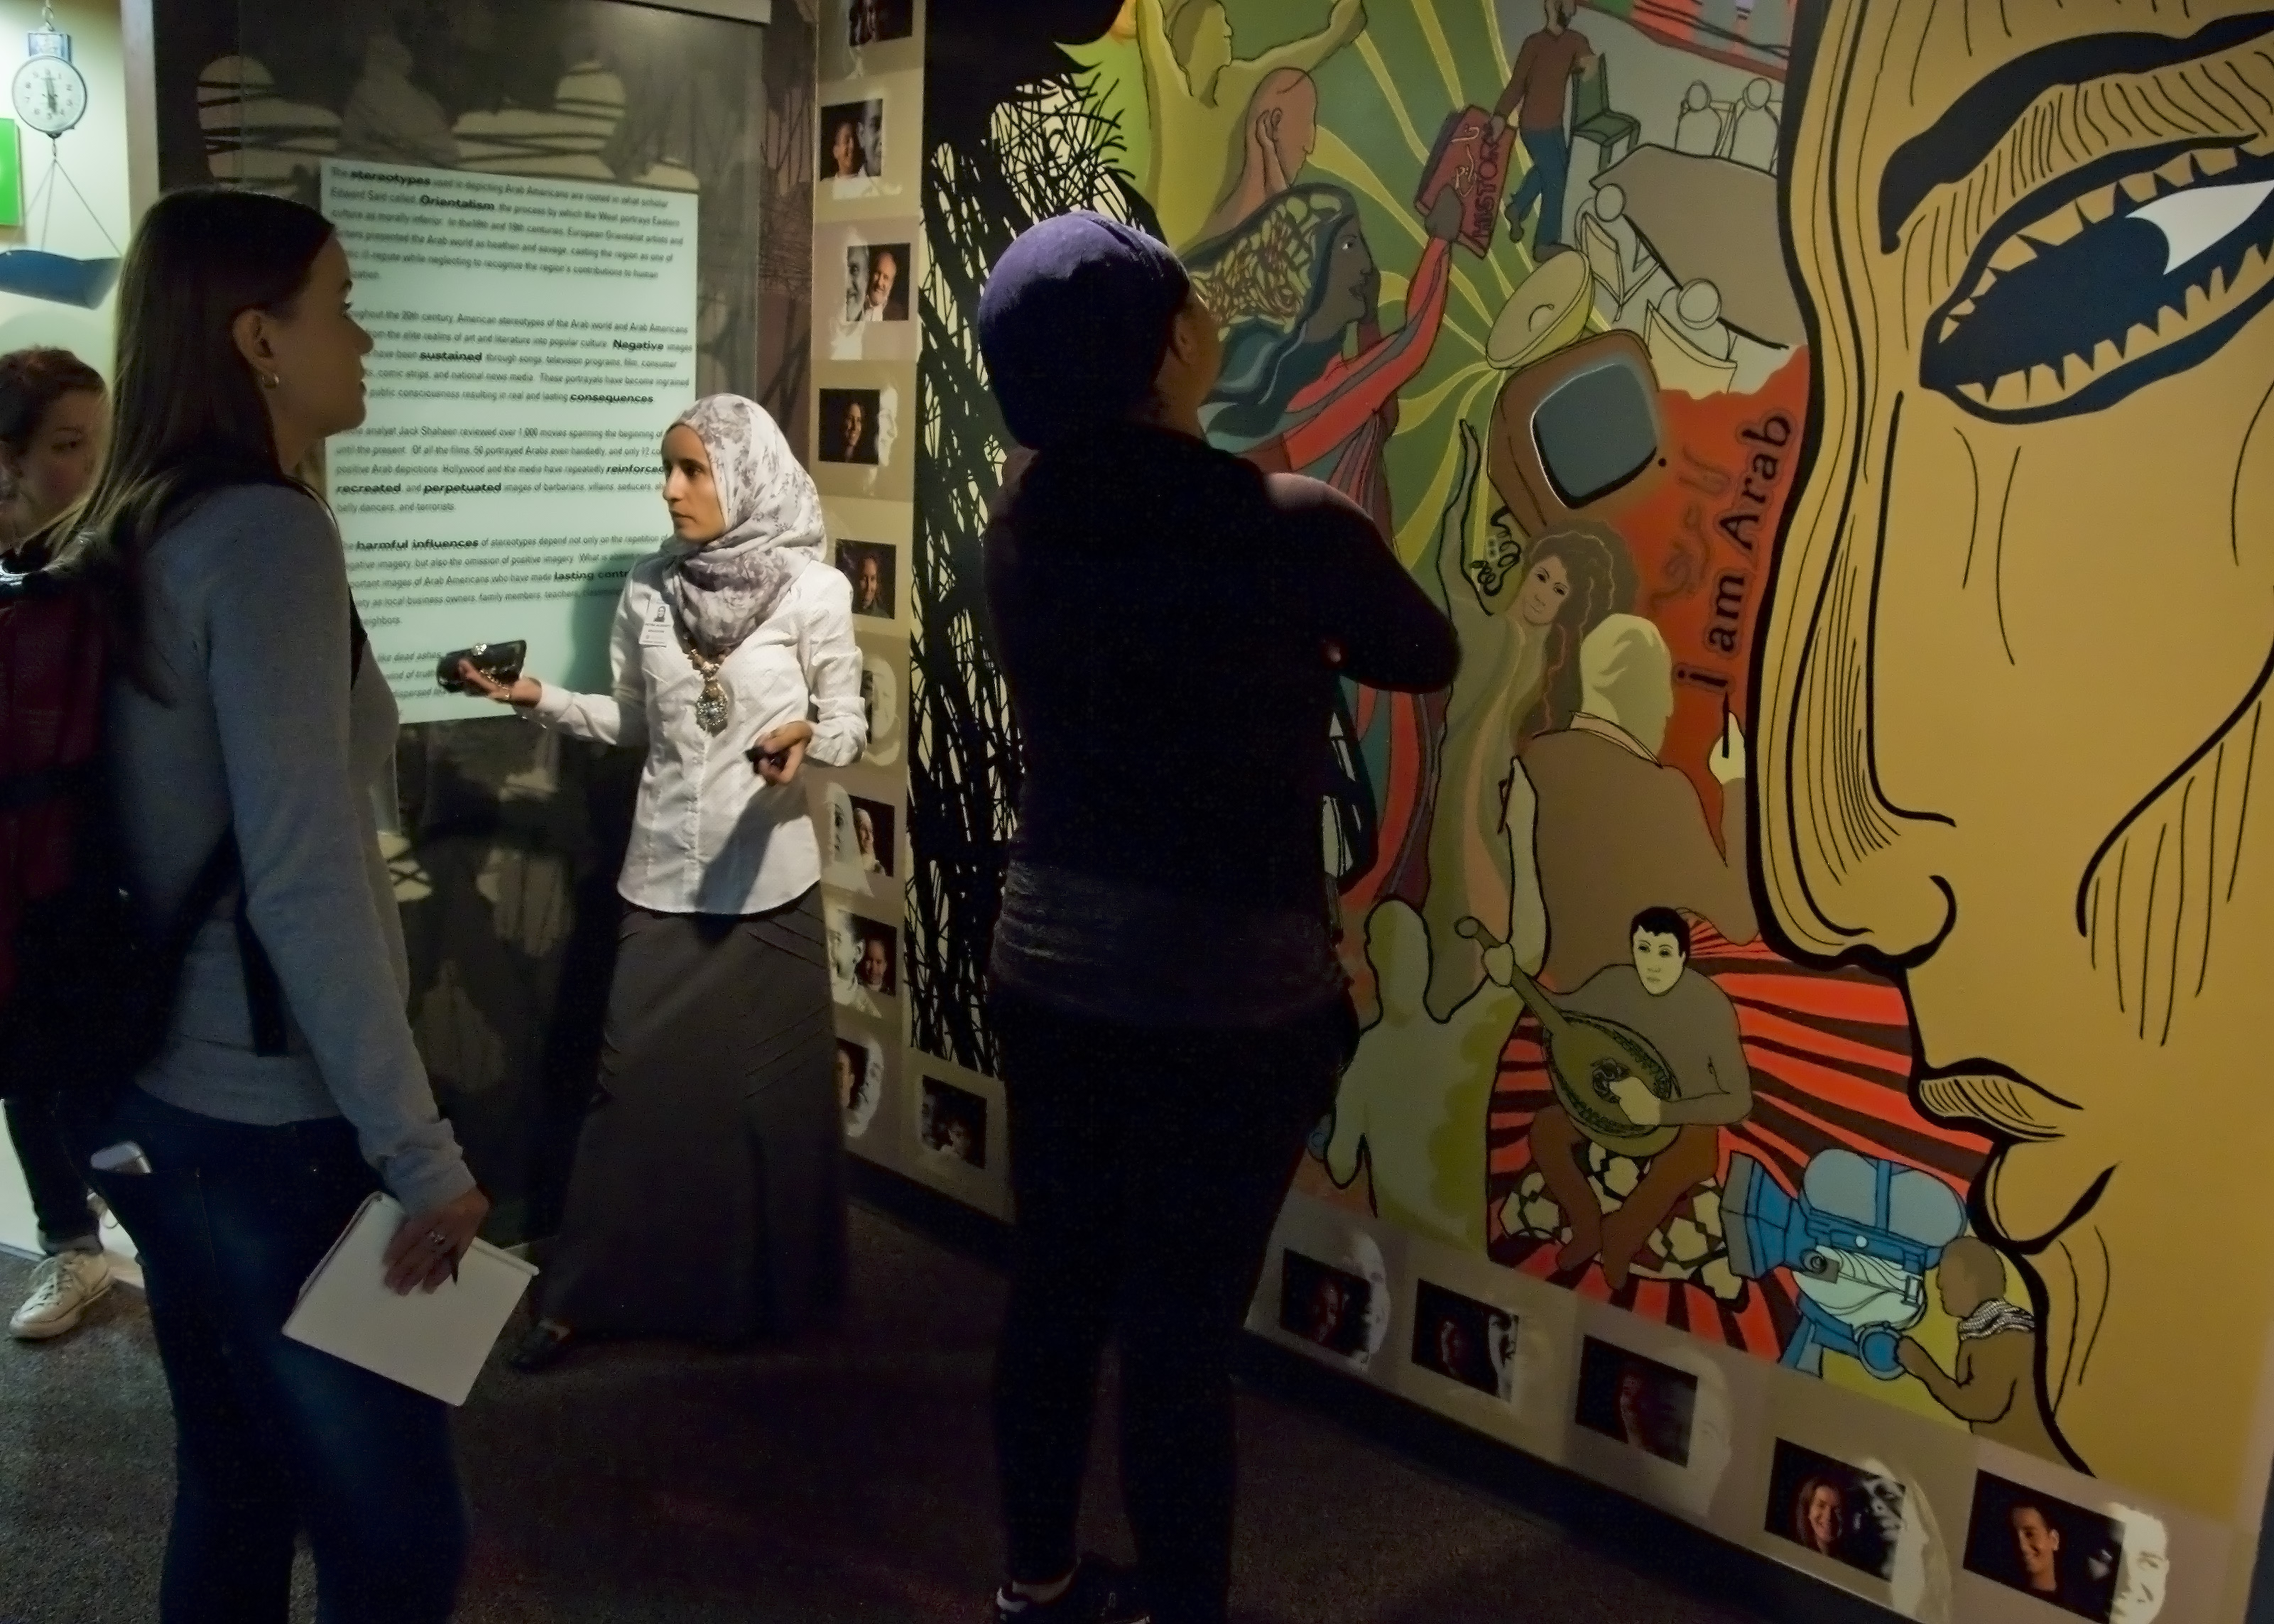 Exhibit at the Arab American National Museum, Institute for Social Change, Summer 2015